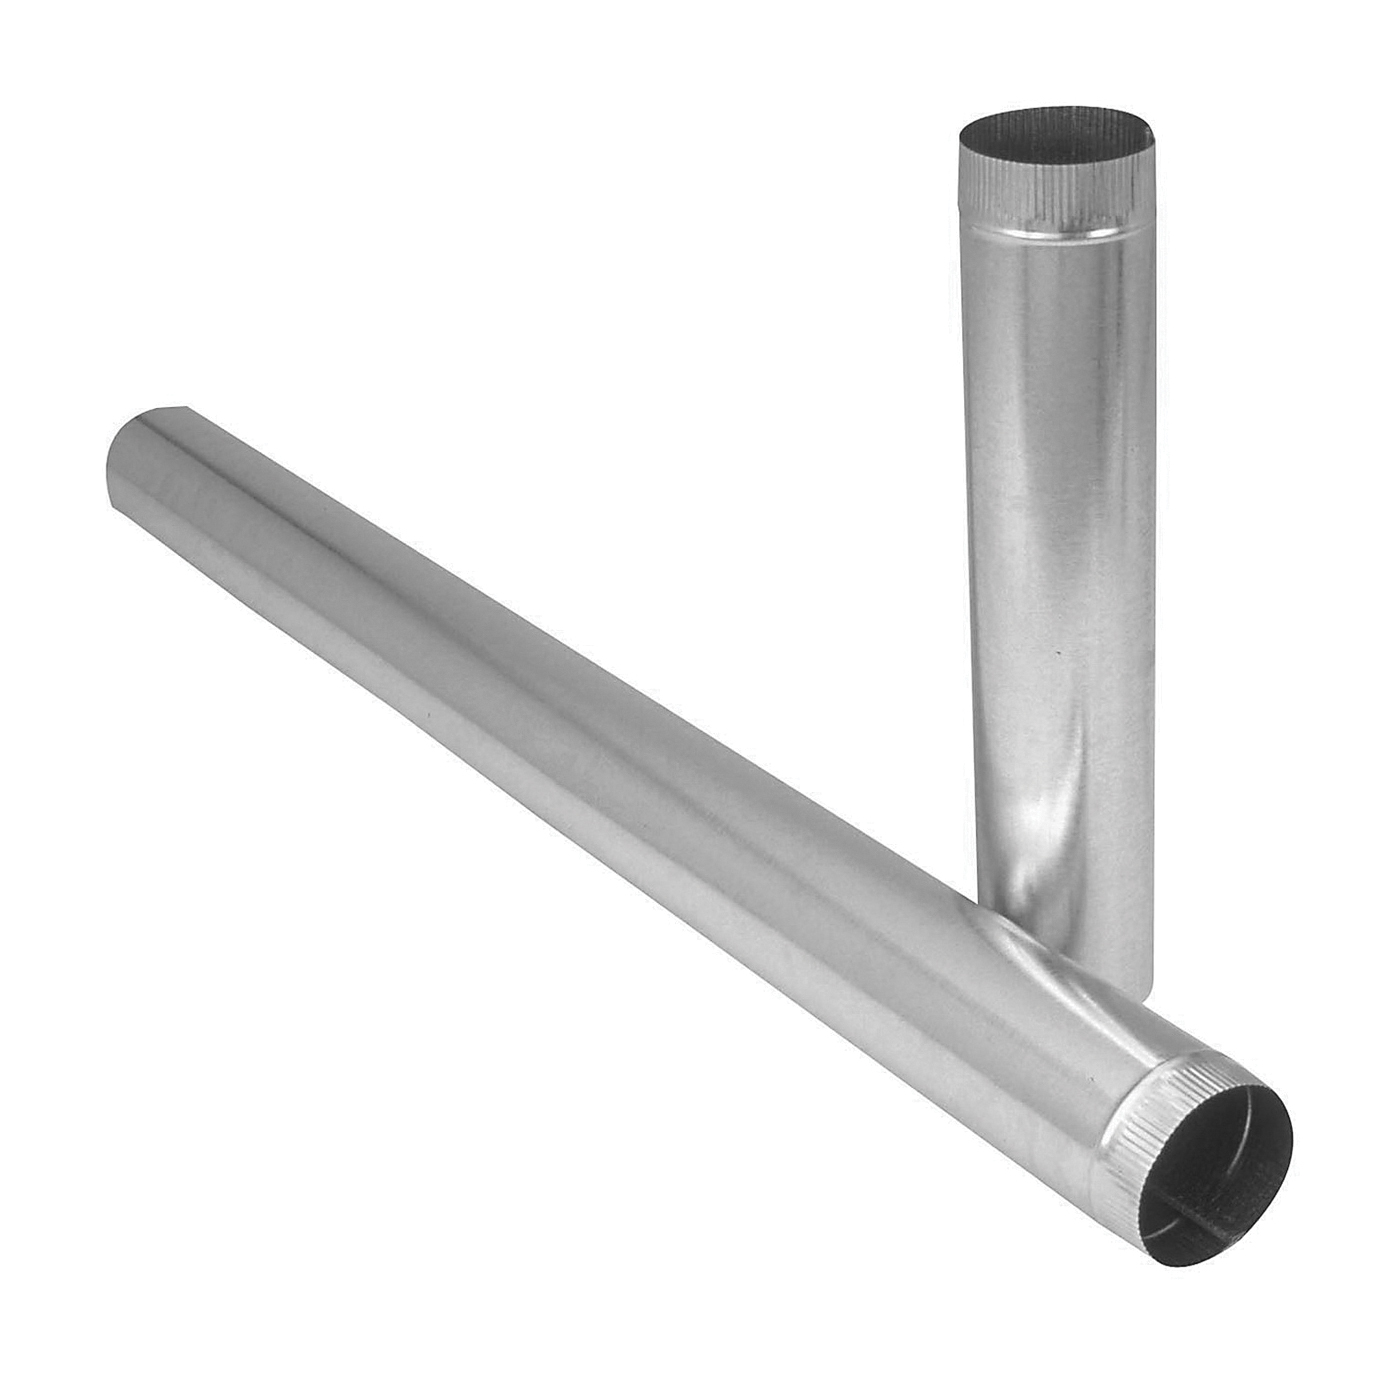 Picture of Imperial GV0405 Duct Pipe, 8 in Dia, 24 in L, 24 Gauge, Galvanized Steel, Galvanized